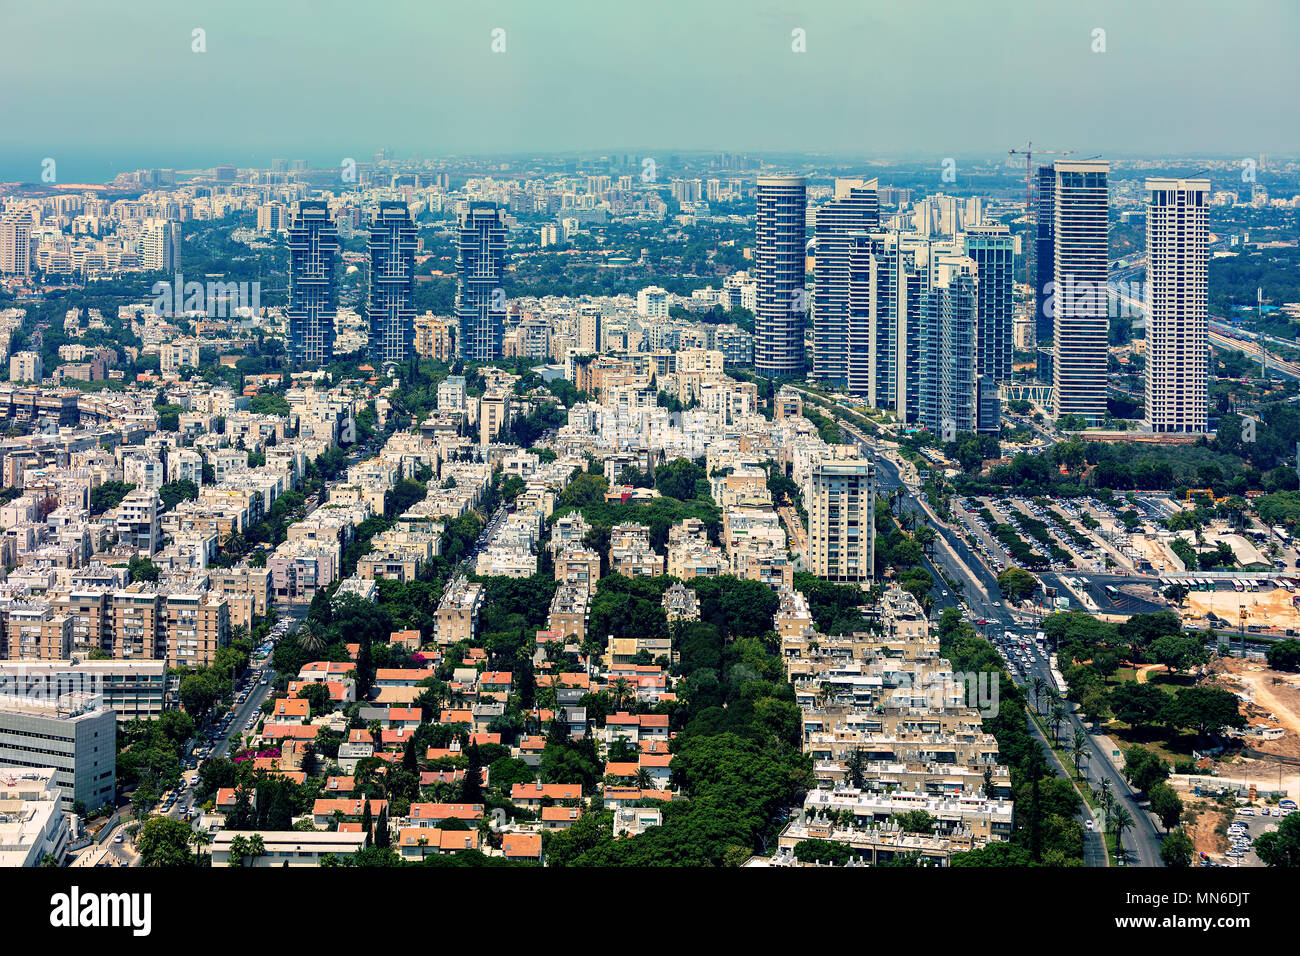 Aerial view of residential buildings and modern office towers in Tel Aviv, Israel. - Stock Image